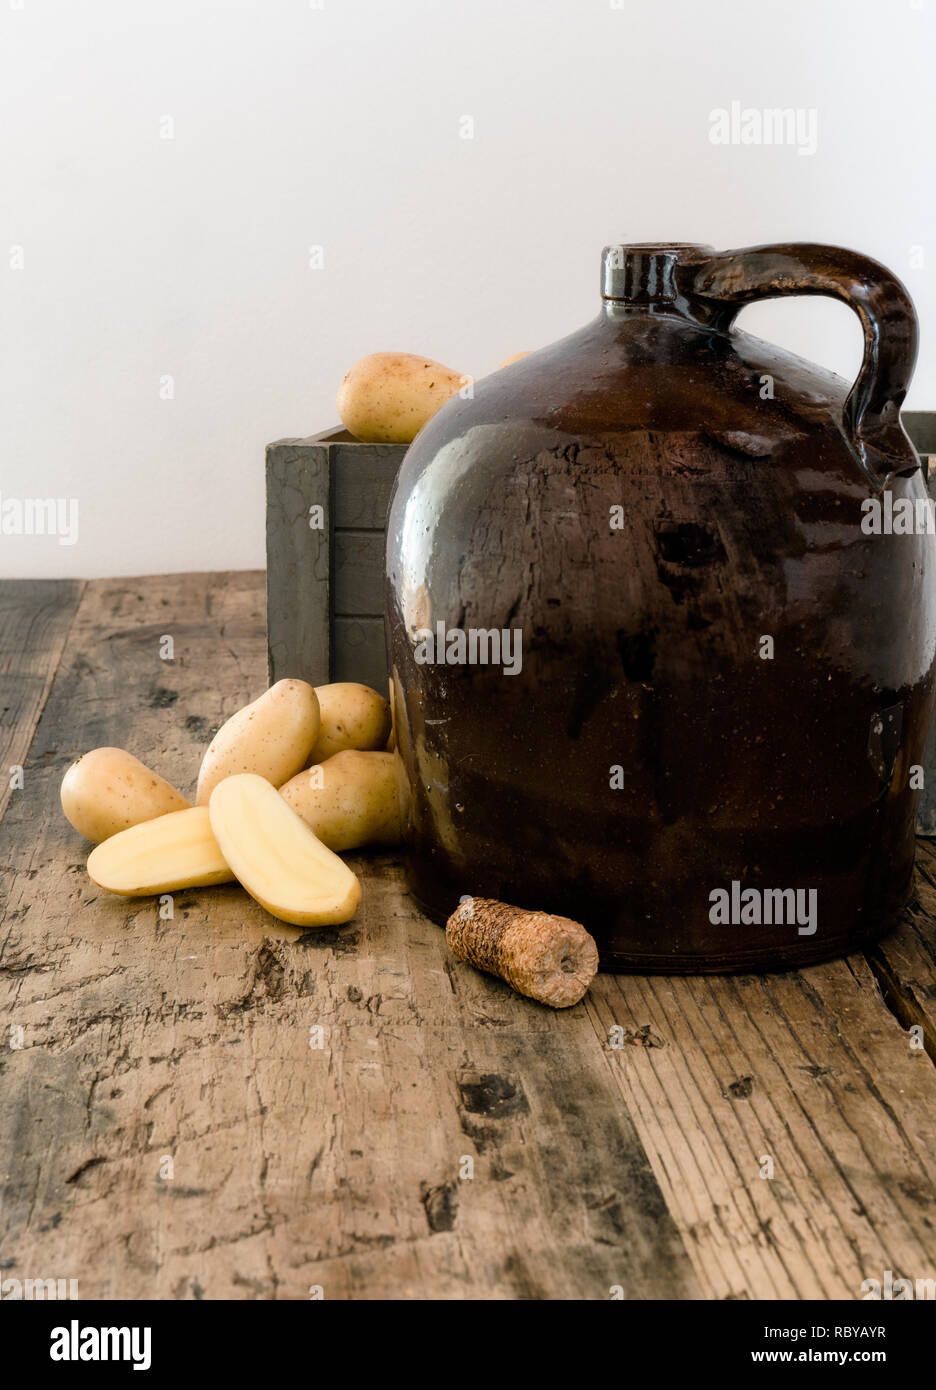 vintage moonshine jug on a rustic wooden table with potatoes and corn cob cork for distilling hard liquor - Stock Image